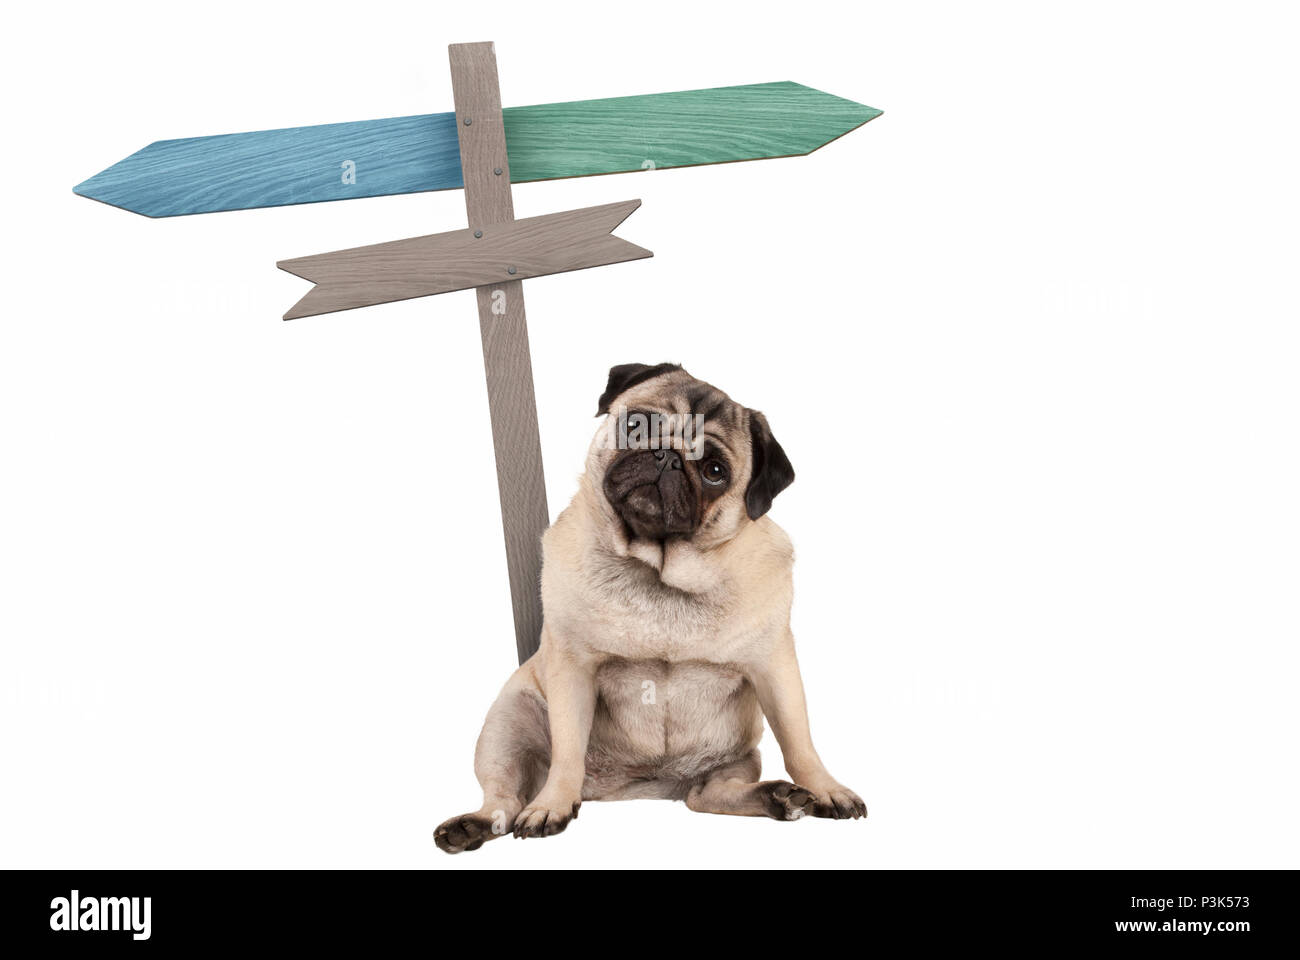 funny cute pug puppy dog sitting down next to blank signpost; with signs pointing left and right, isolated on white background Stock Photo